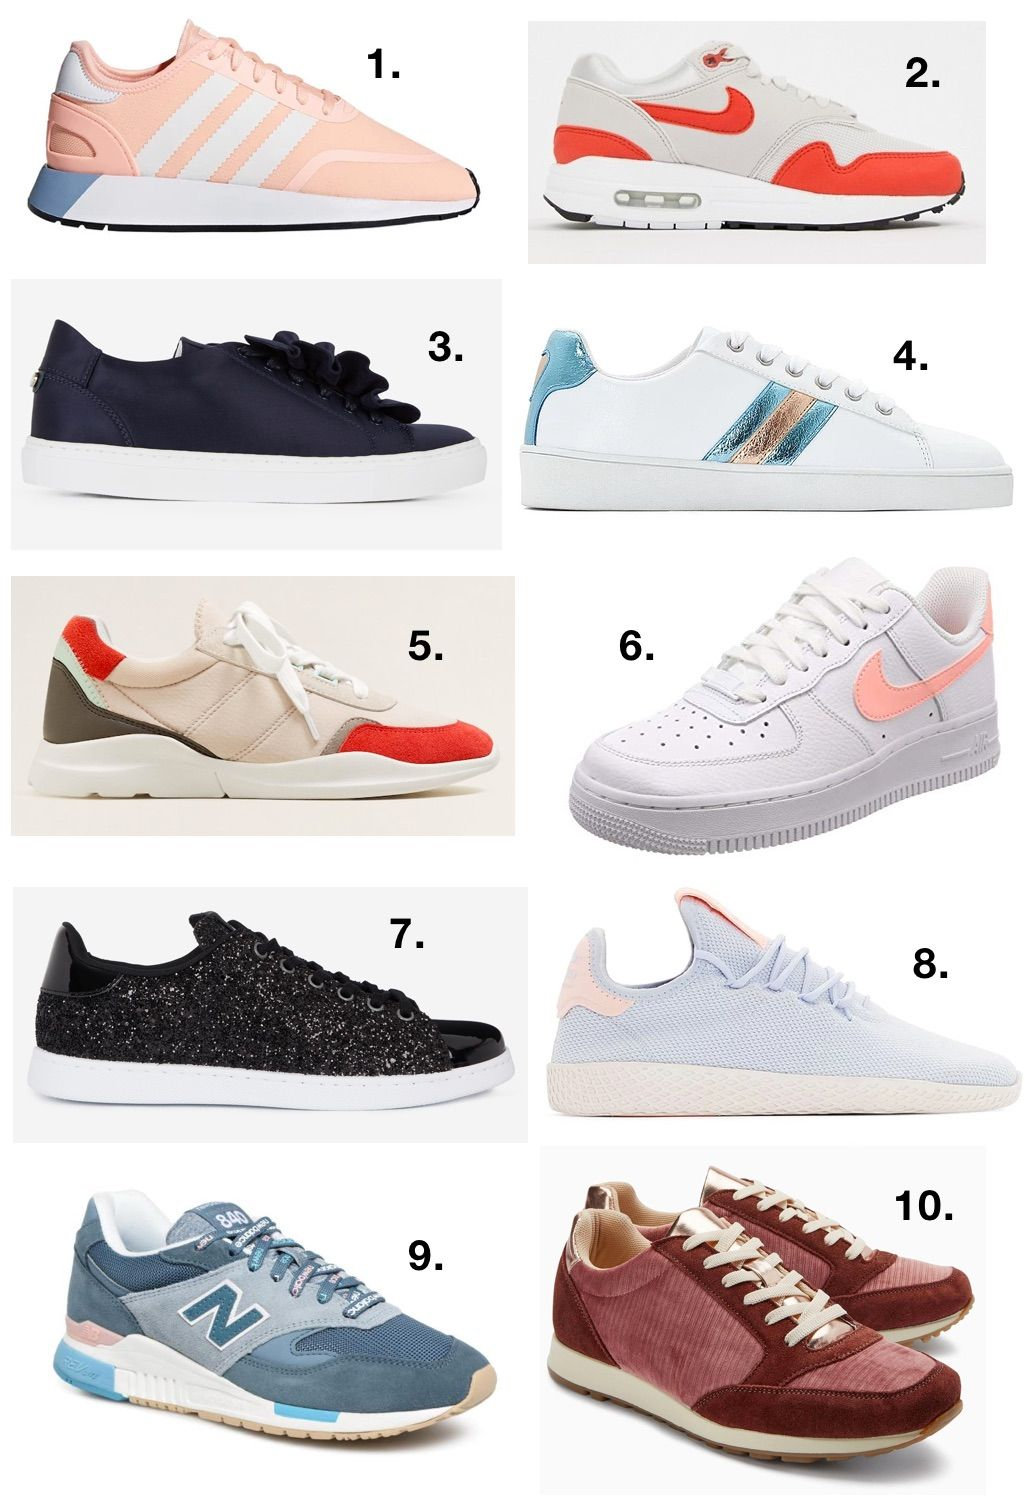 Baskets automne-hiver 2018-2019   10 sneakers tendances qu on adore !   baskets  sneakers  adidas  nike  newbalance ee39a65e857f